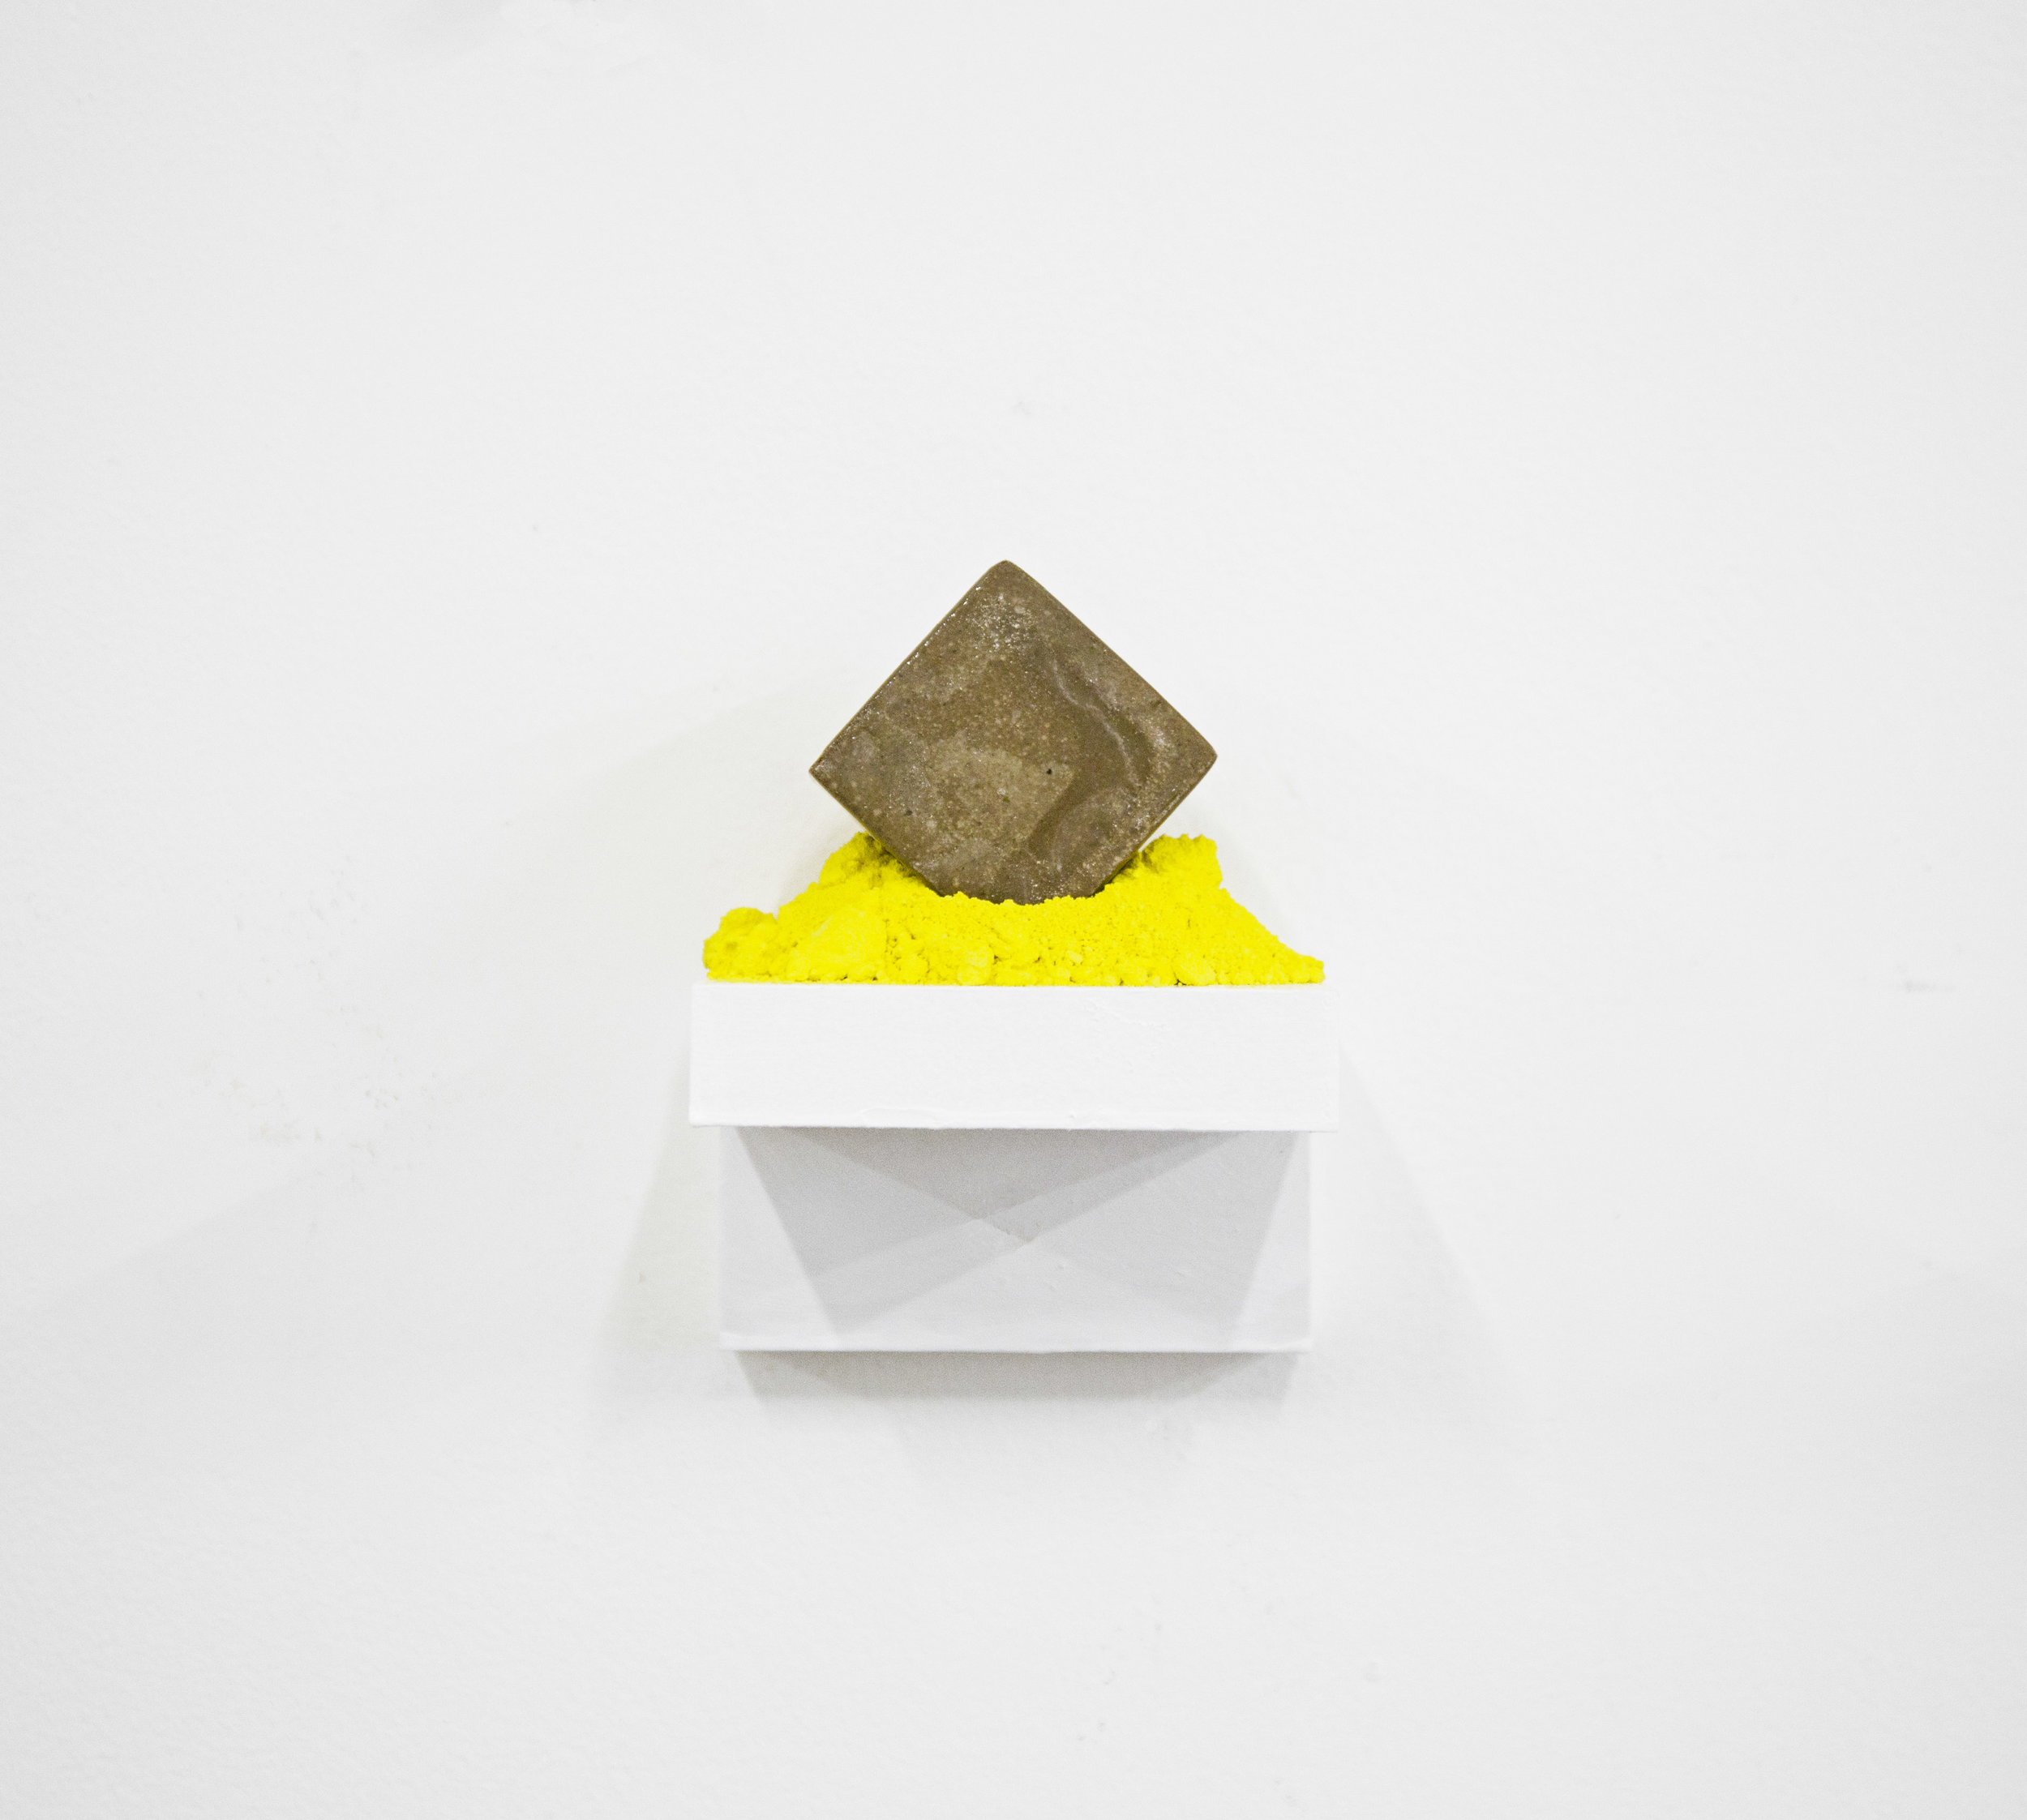 """""""You surrounded me with color Yellow""""                    4x4x4 in, Concrete and Pigment on Wooden shelf, 2017"""